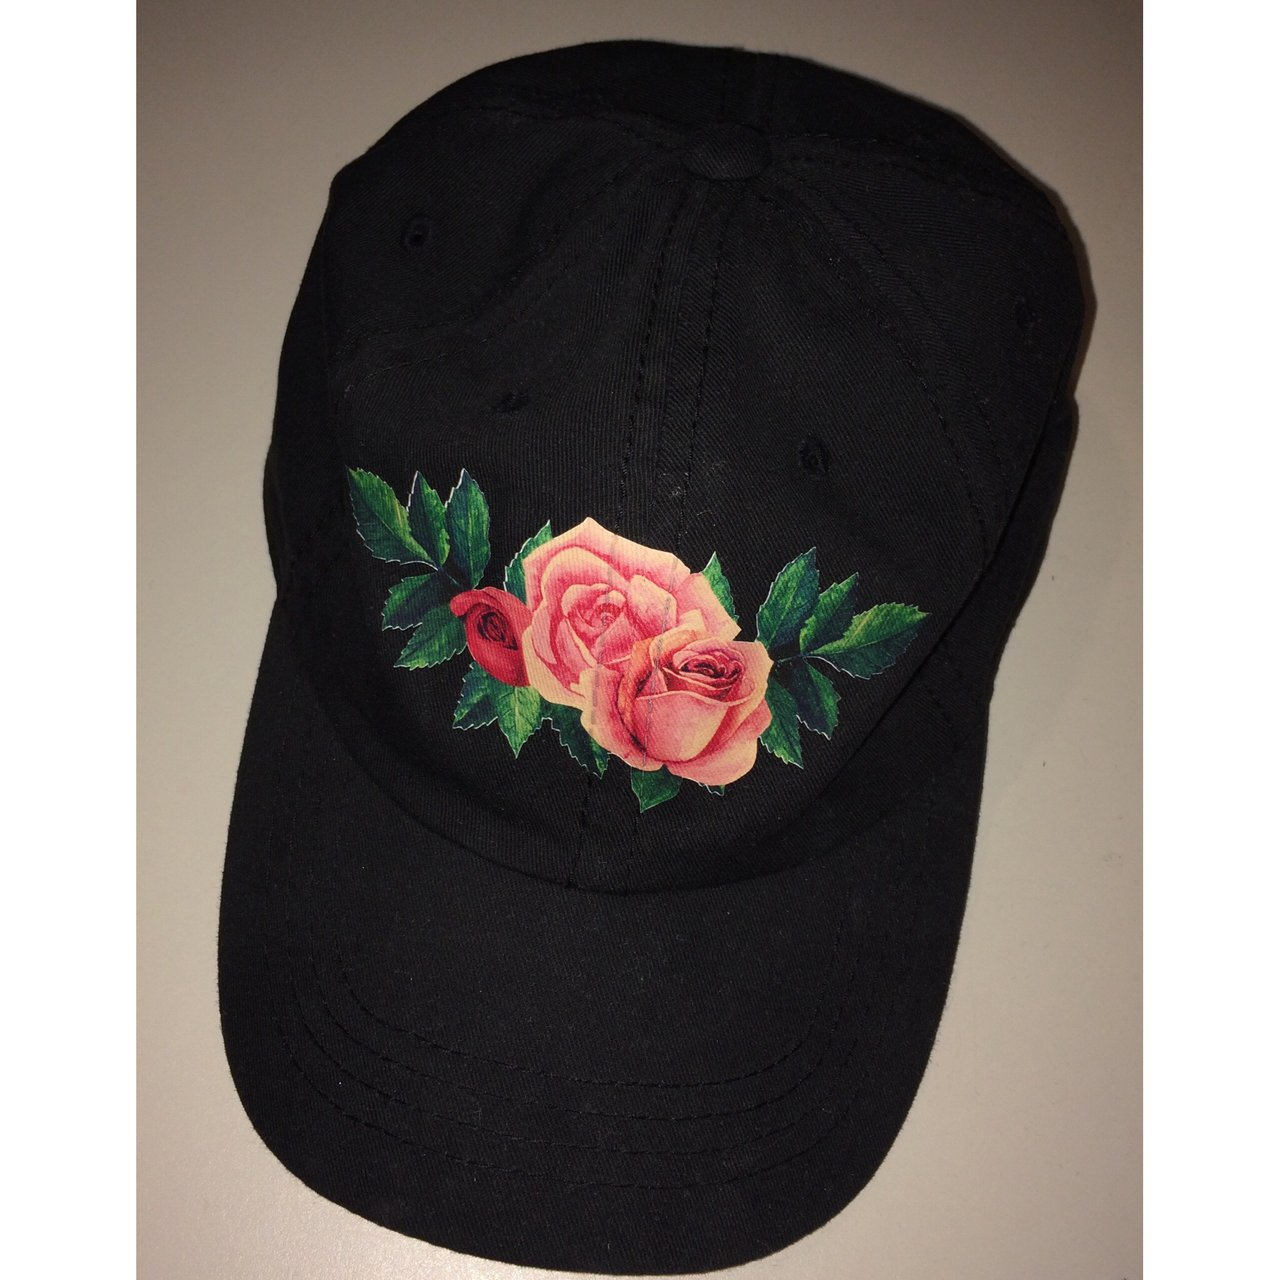 Black hat with roses on the front  hat  dadhat  black  hats - Depop b86dbc7b515